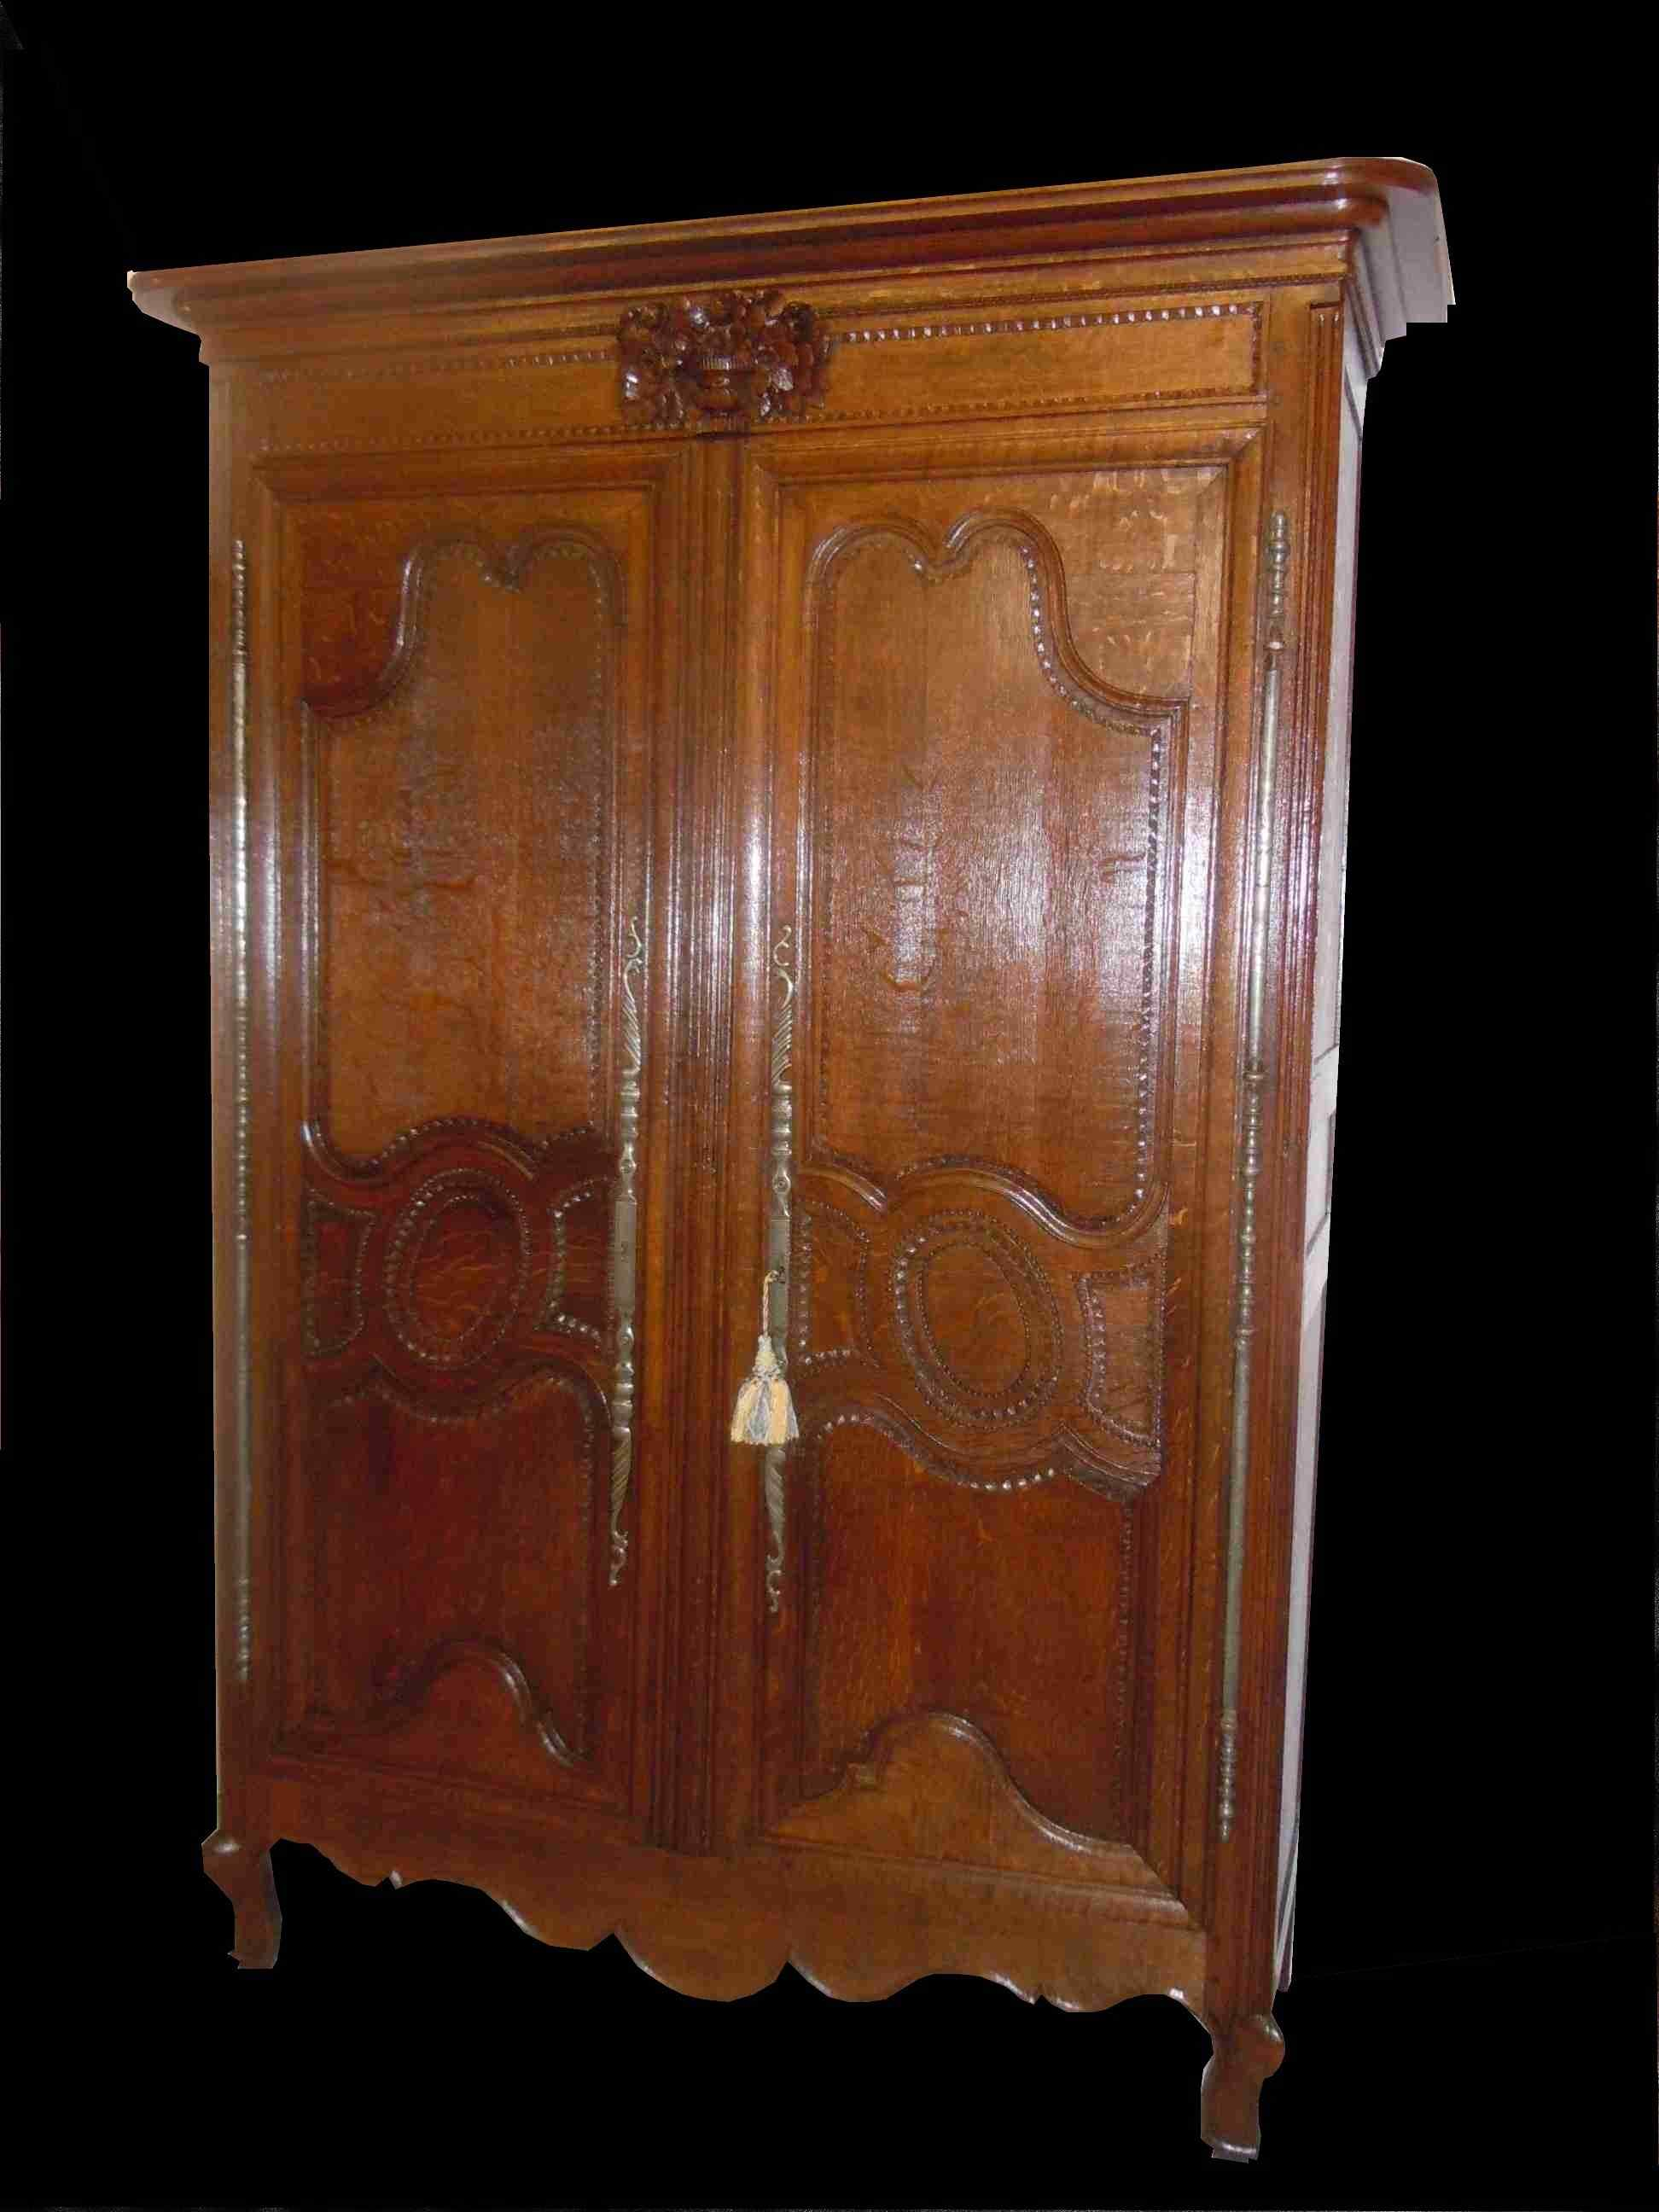 armoire normande de mariage sculpt e d 39 poque xviii si cle anticswiss. Black Bedroom Furniture Sets. Home Design Ideas